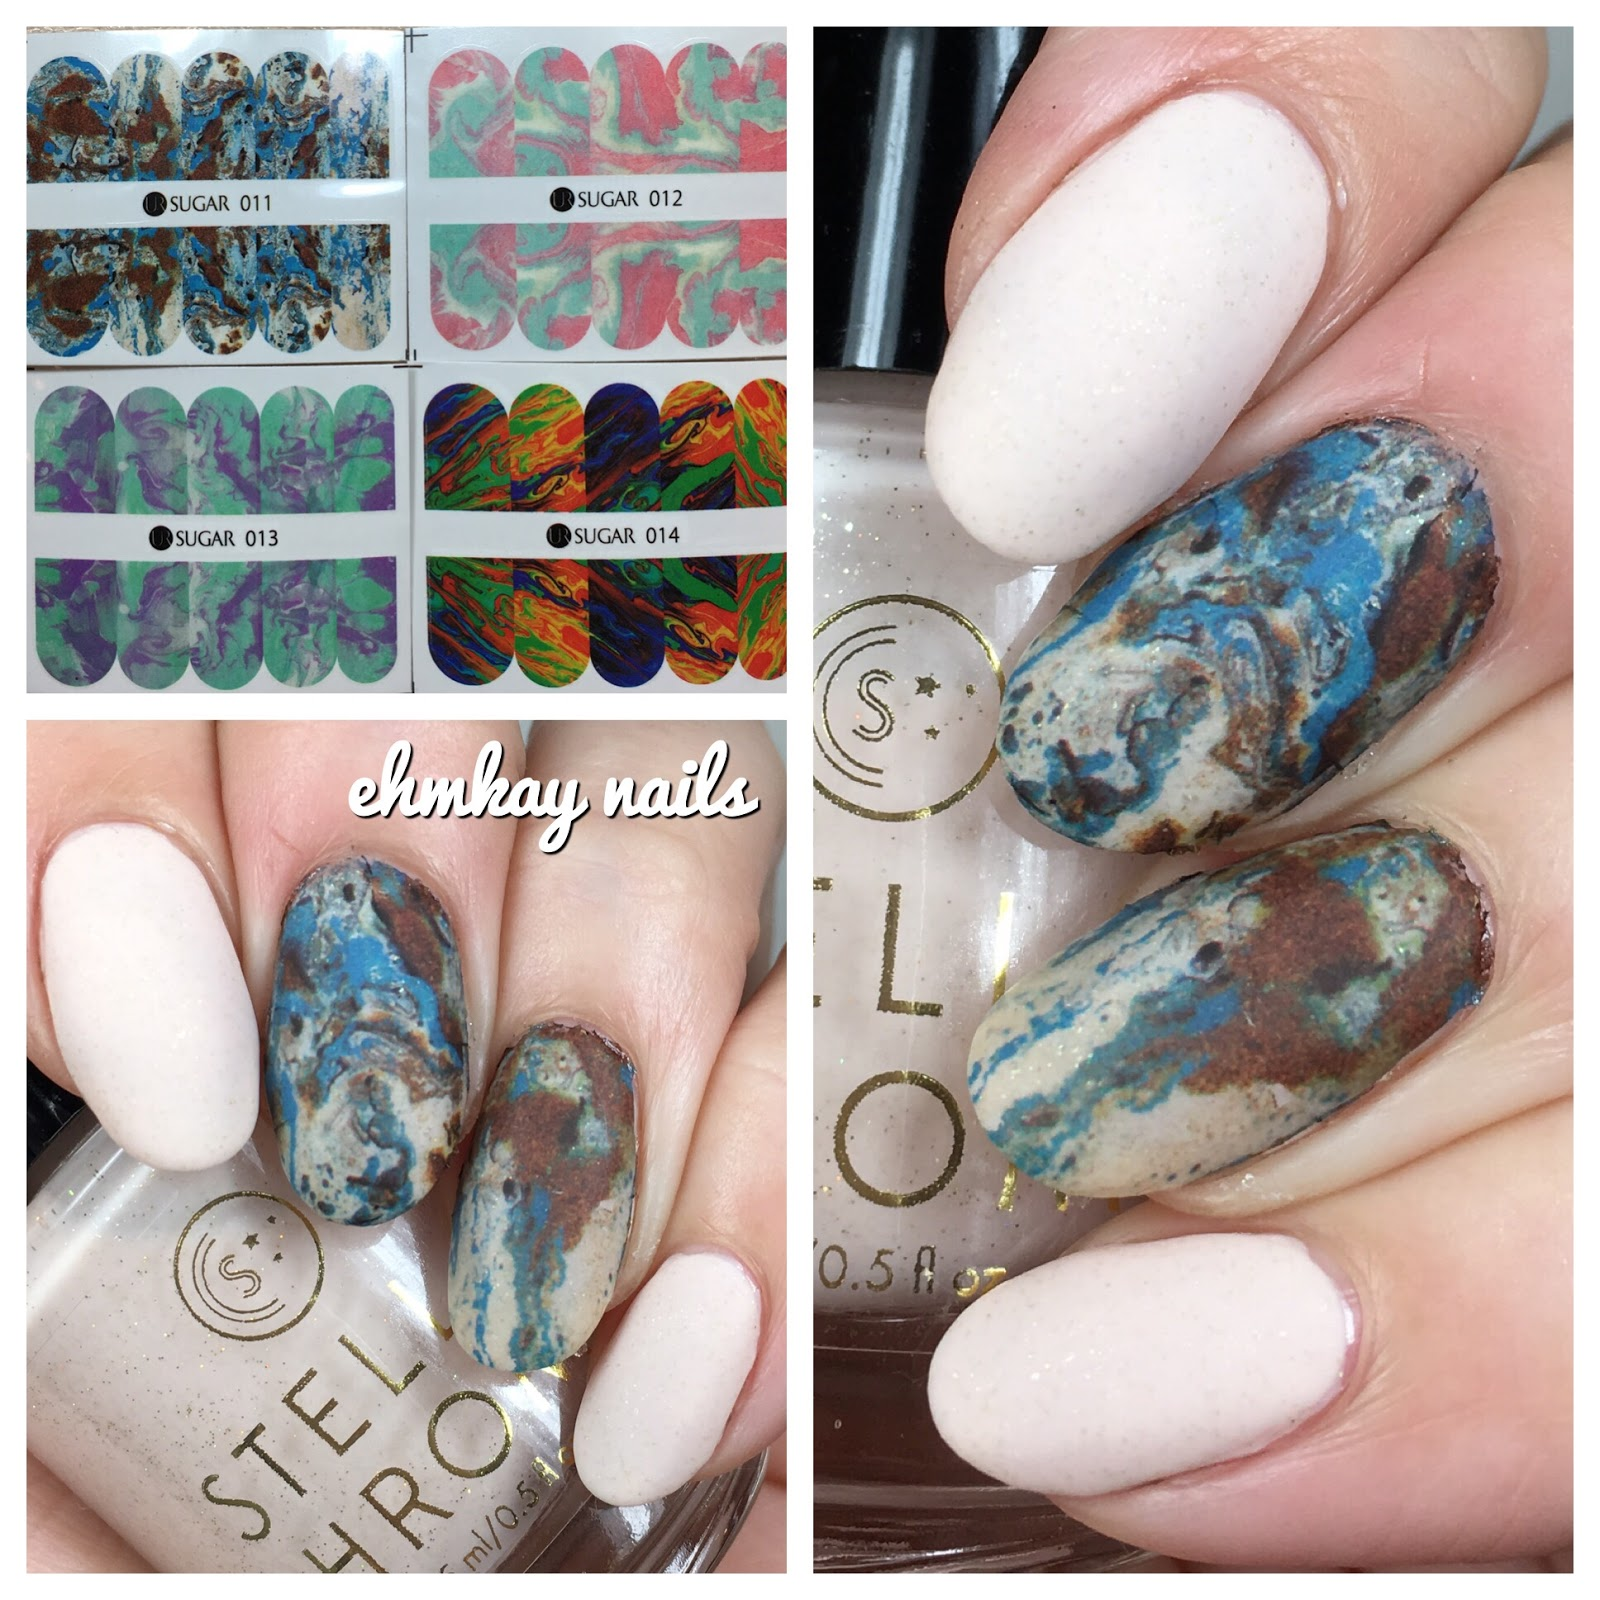 ehmkay nails: Alabaster Nail Art with Born Pretty Water Decals